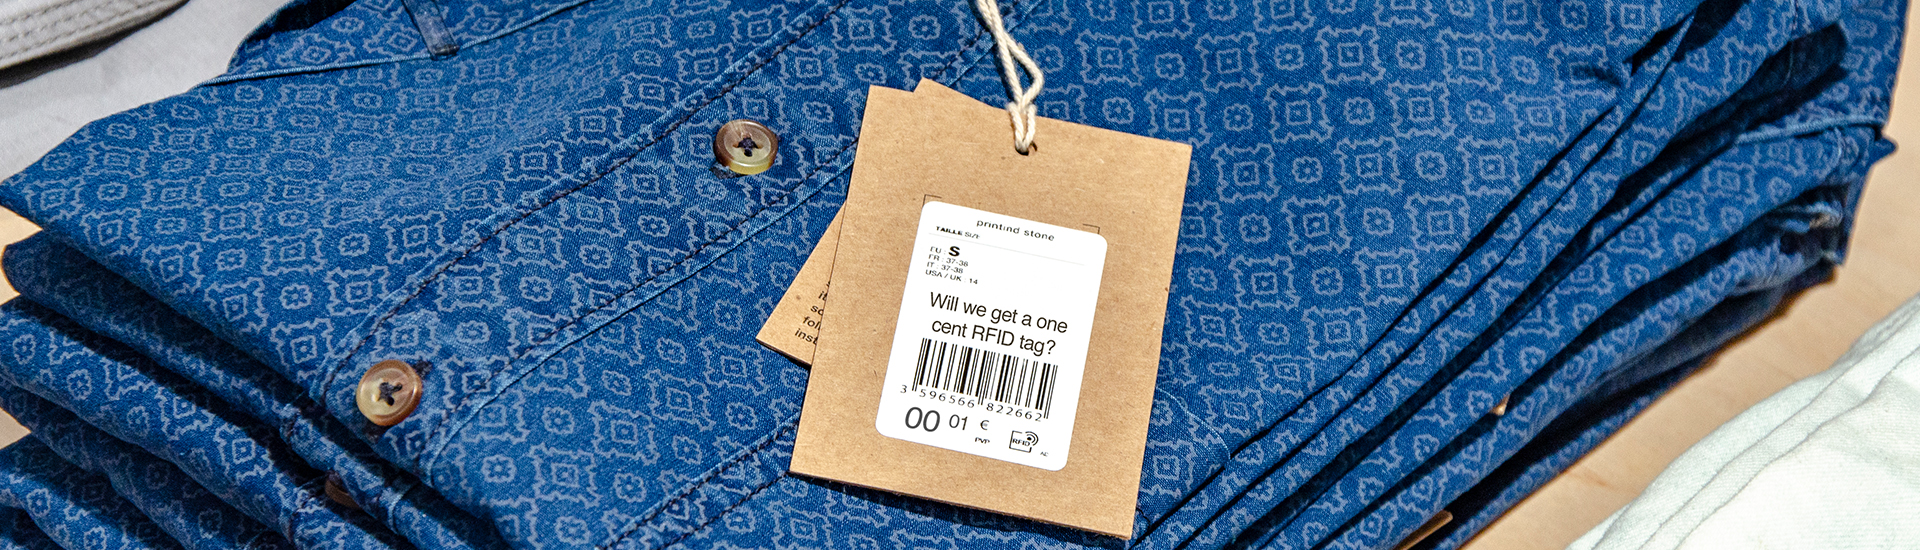 One cent RFID tag